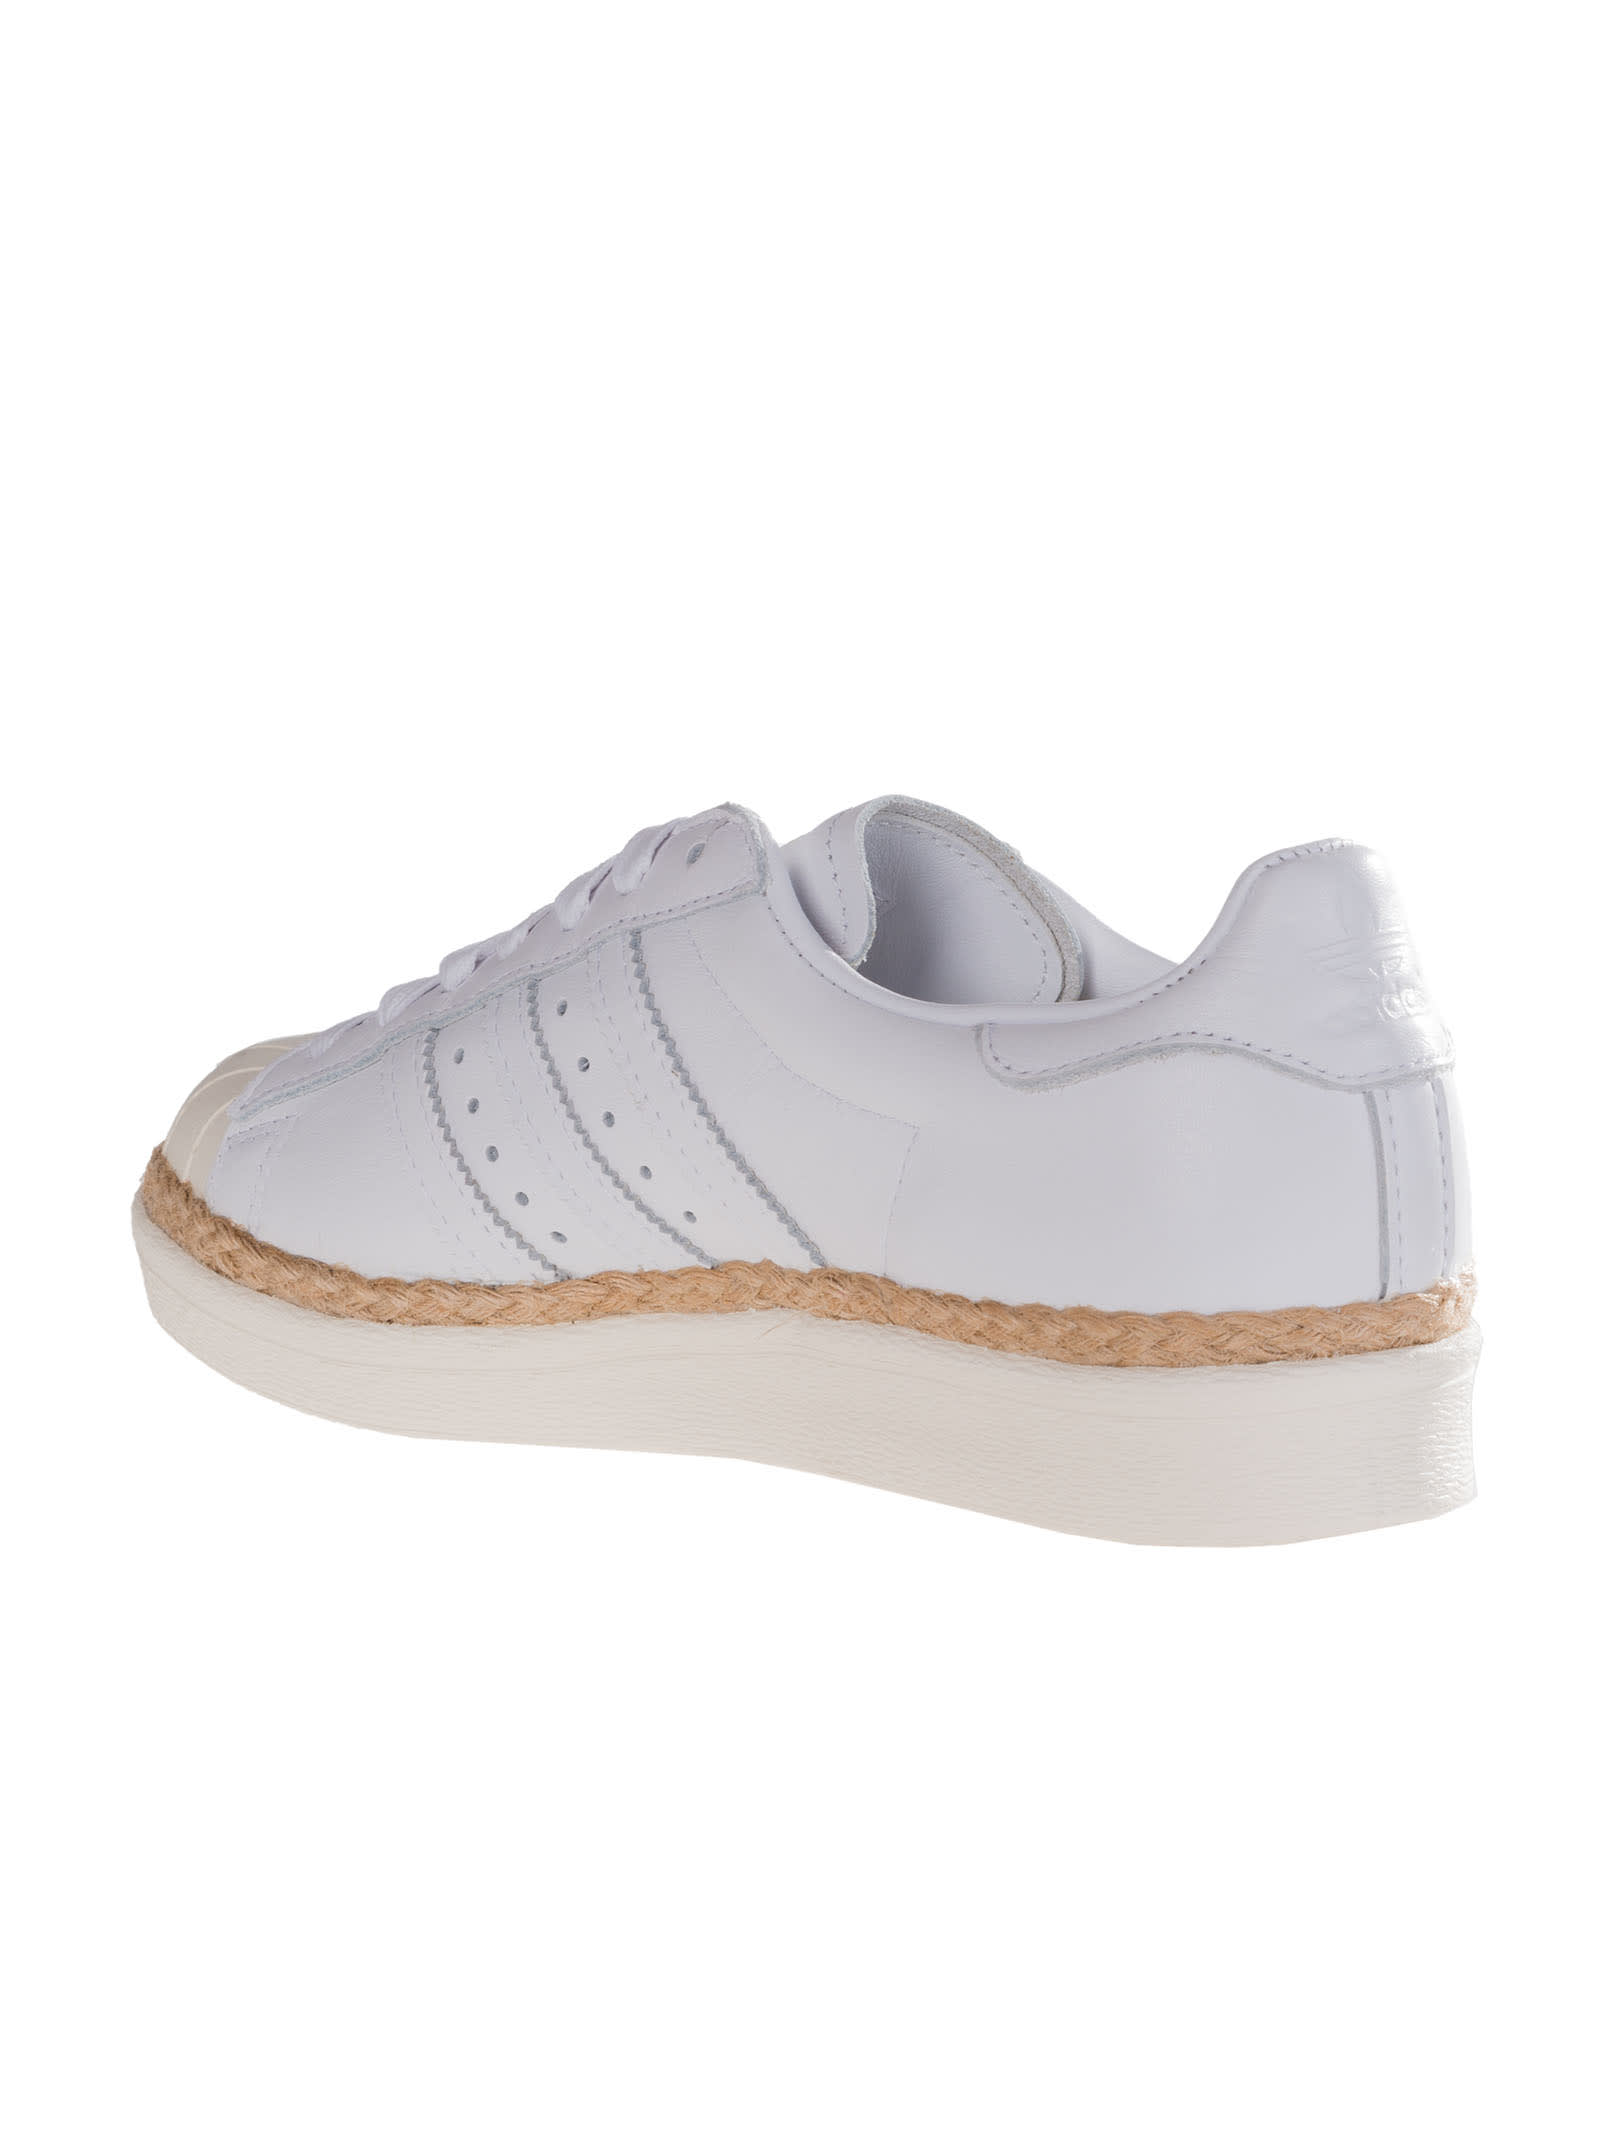 best sneakers 00bdc 6b373 Adidas Superstar 80s New Bold Sneakers